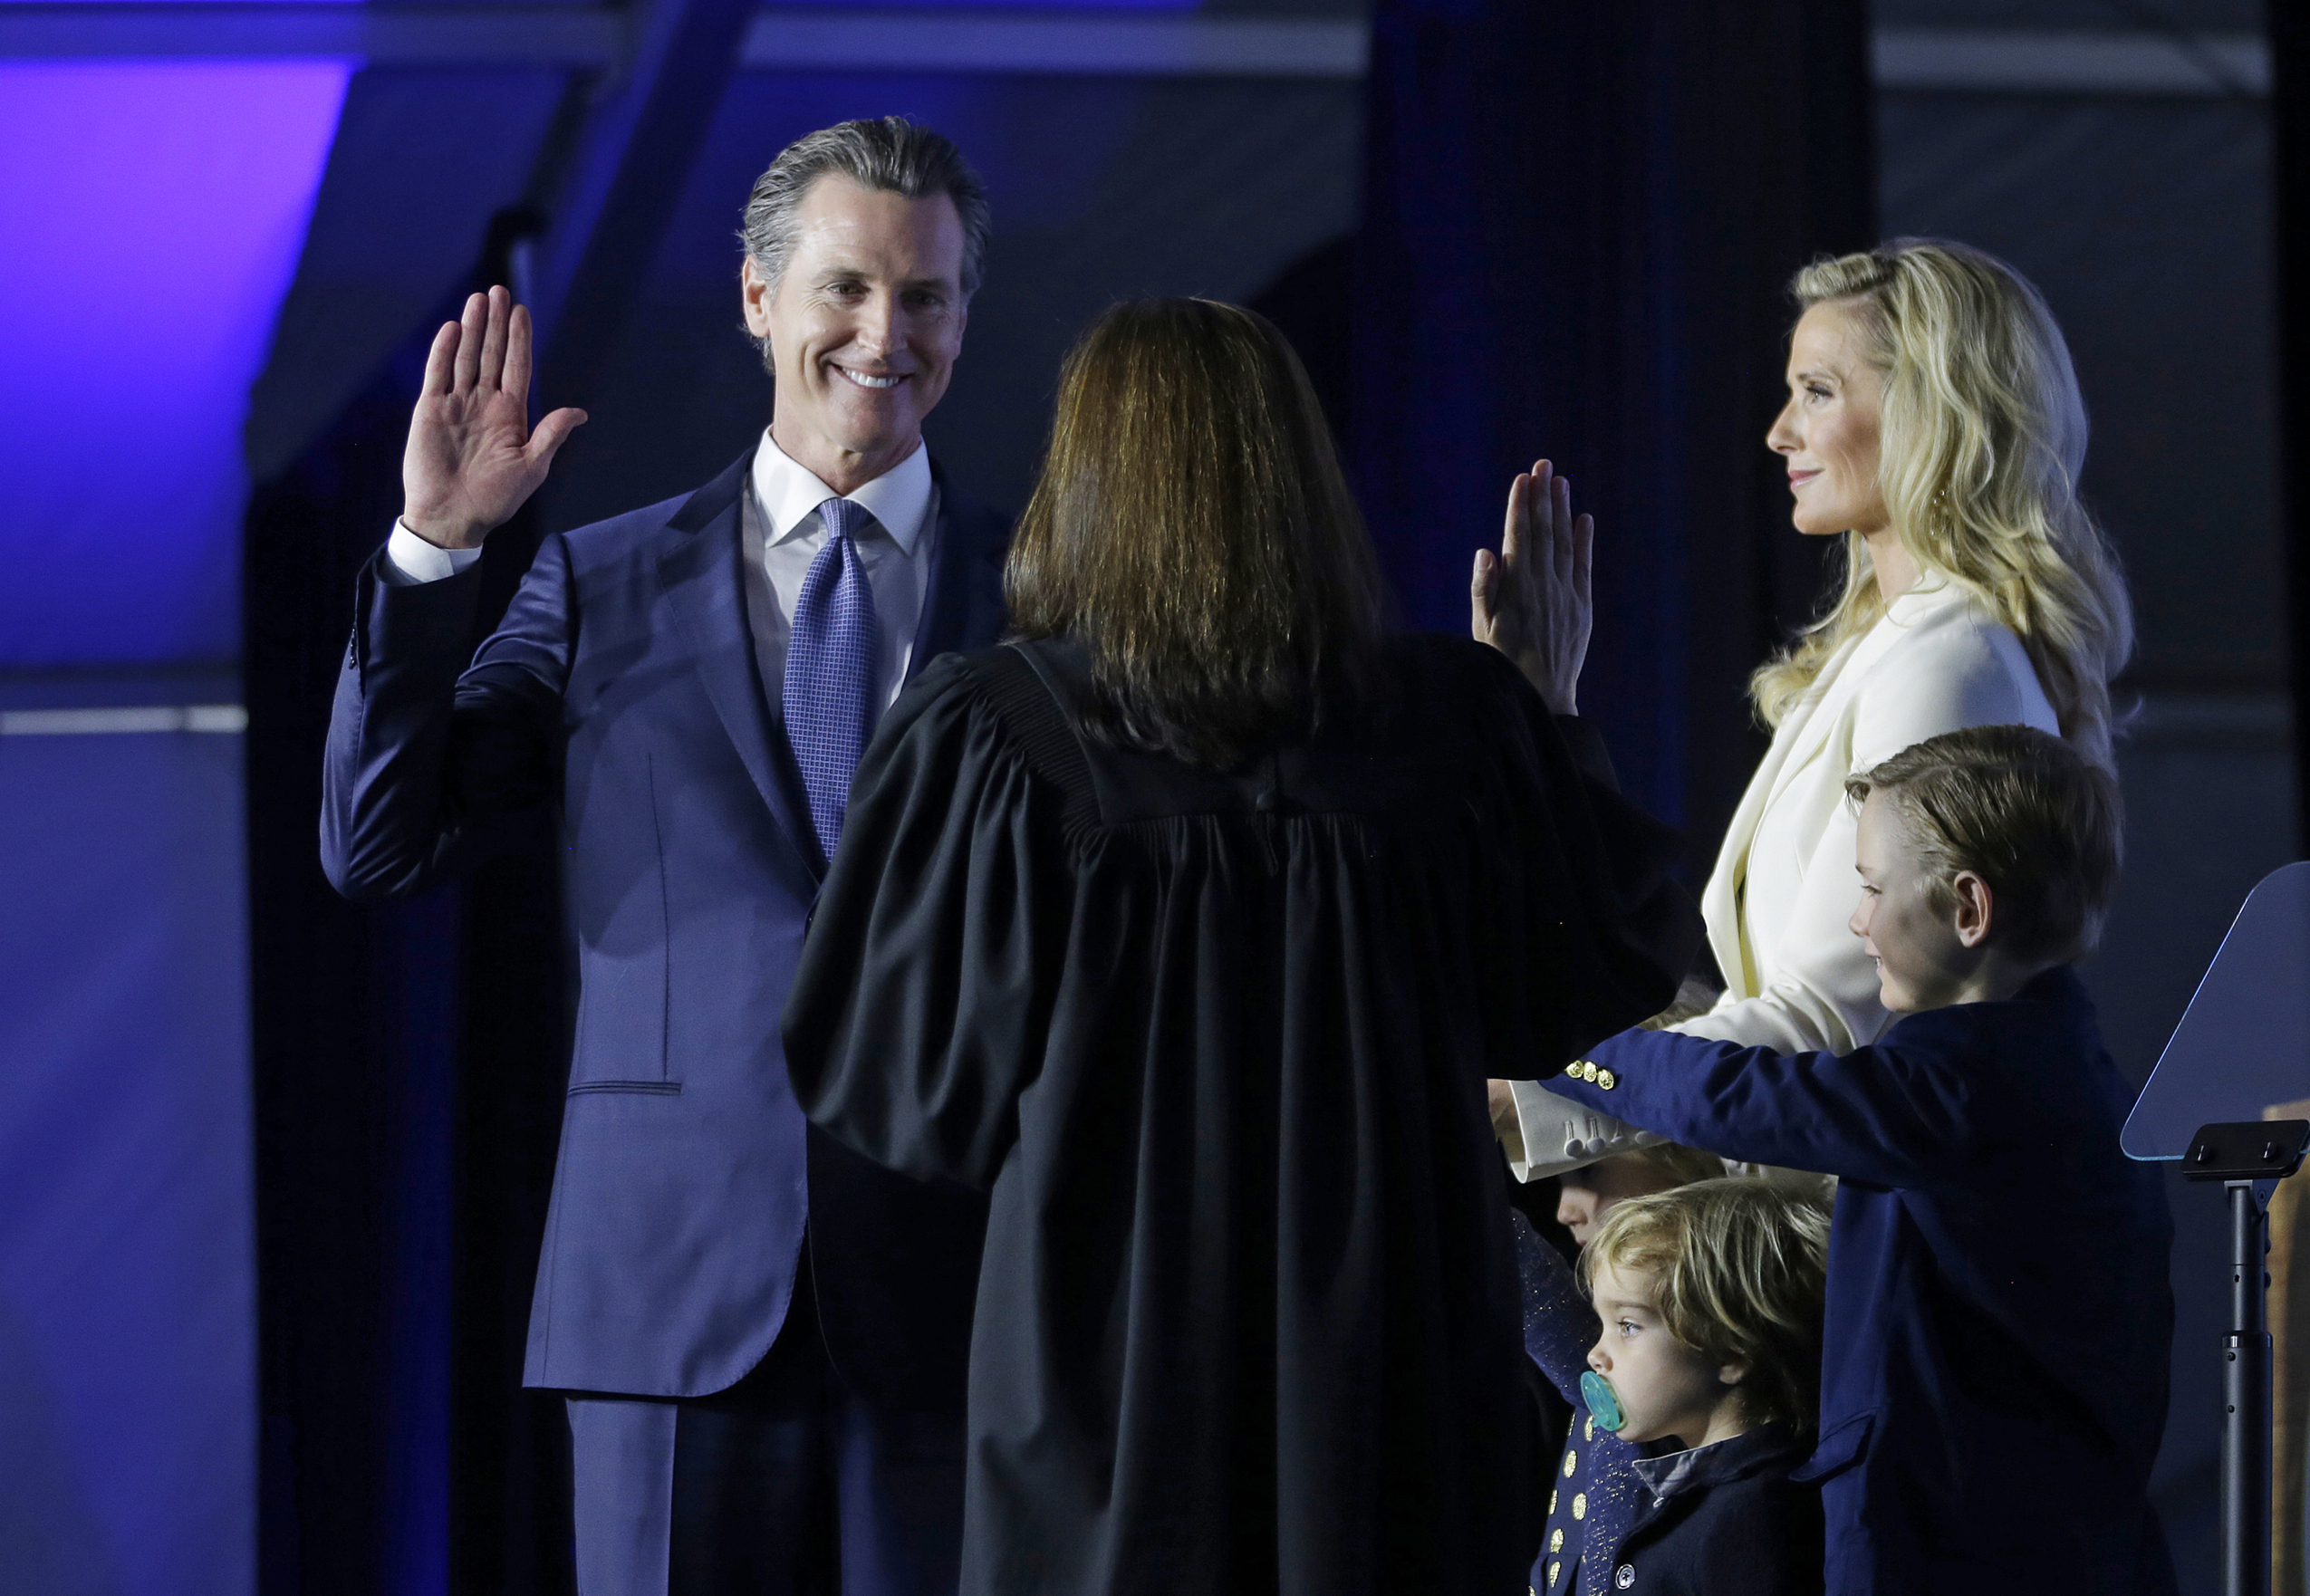 FILE - In this Jan. 7, 2019, file photo, California Governor Gavin Newsom takes the oath of office from state Supreme Court Chief Justice Tani Gorre Cantil-Sakauye during his inauguration in Sacramento, Calif. Looking on is Newsom's wife, Jennifer Siebel Newsom and their sons, Dutch, second from right, and Hunter, right. Newly elected California Gov. Gavin Newsom announced plans to expand Medicaid to those in the country illegally up to age 26 and implement a mandate that everyone buy insurance or face a fine. (AP Photo/Rich Pedroncelli, File)